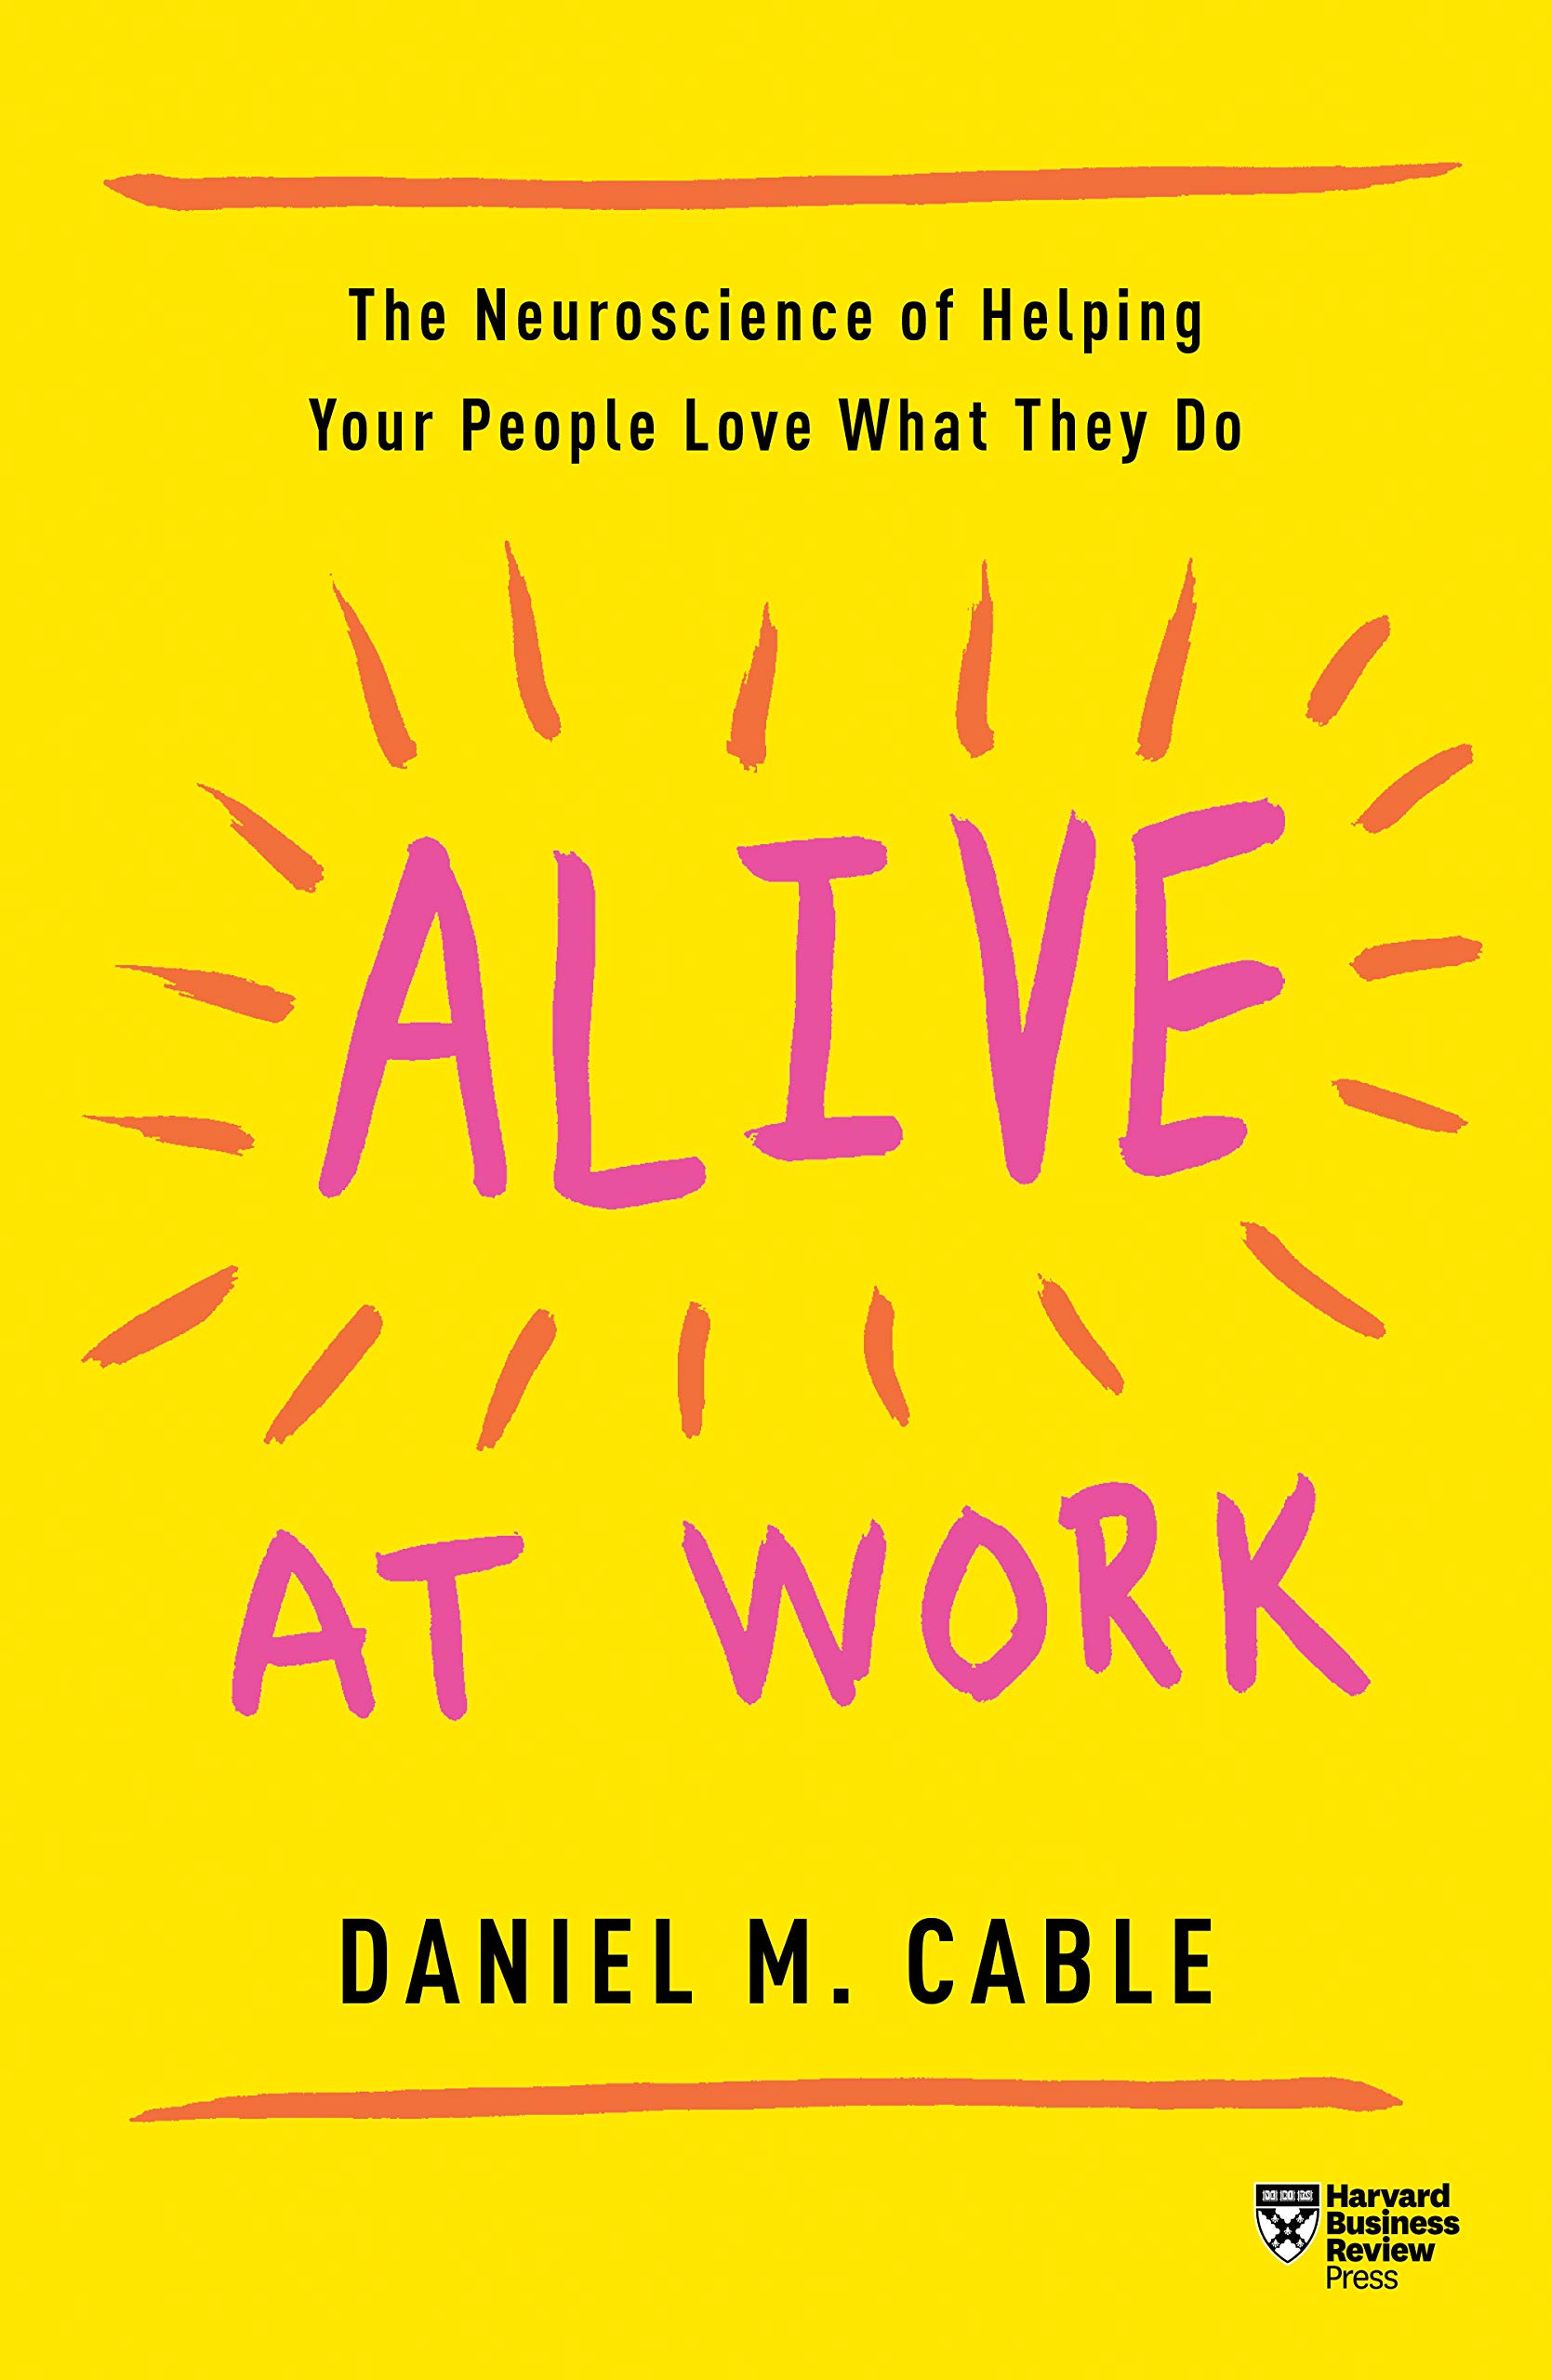 Image OfAlive At Work: The Neuroscience Of Helping Your People Love What They Do